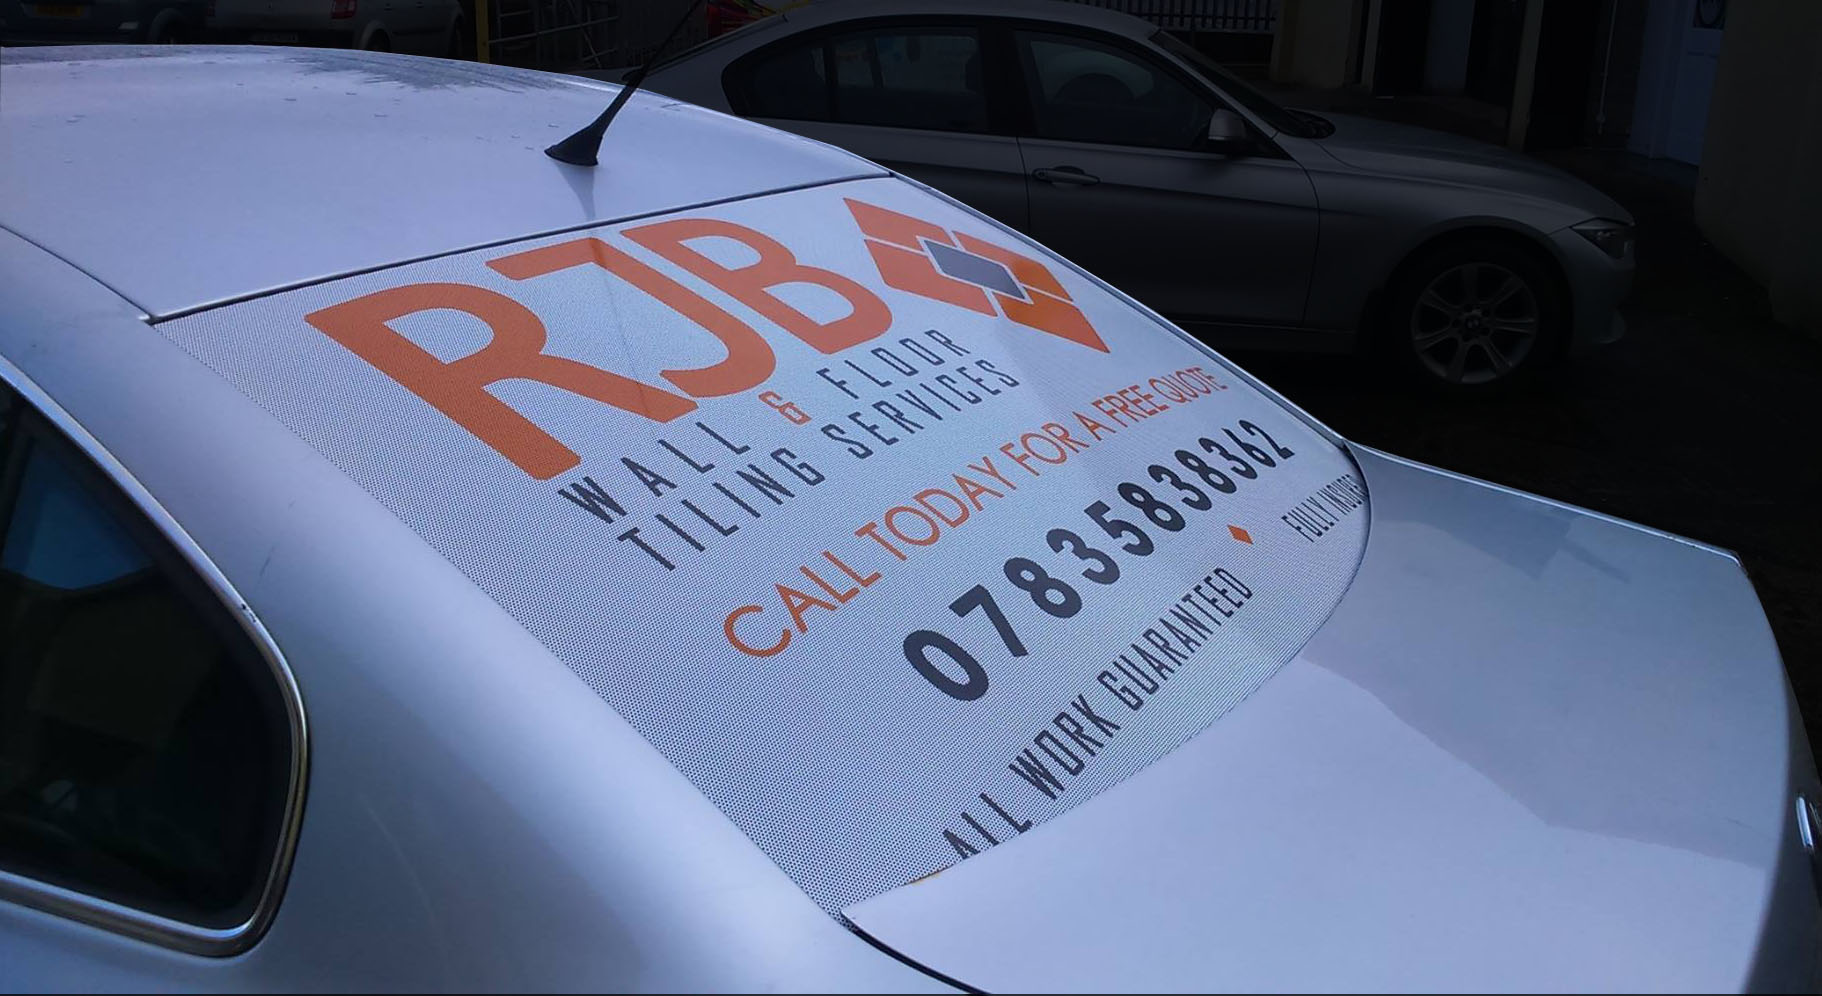 Vehicle Graphics - Rear Window One Way Vision for RJB Tiling Services